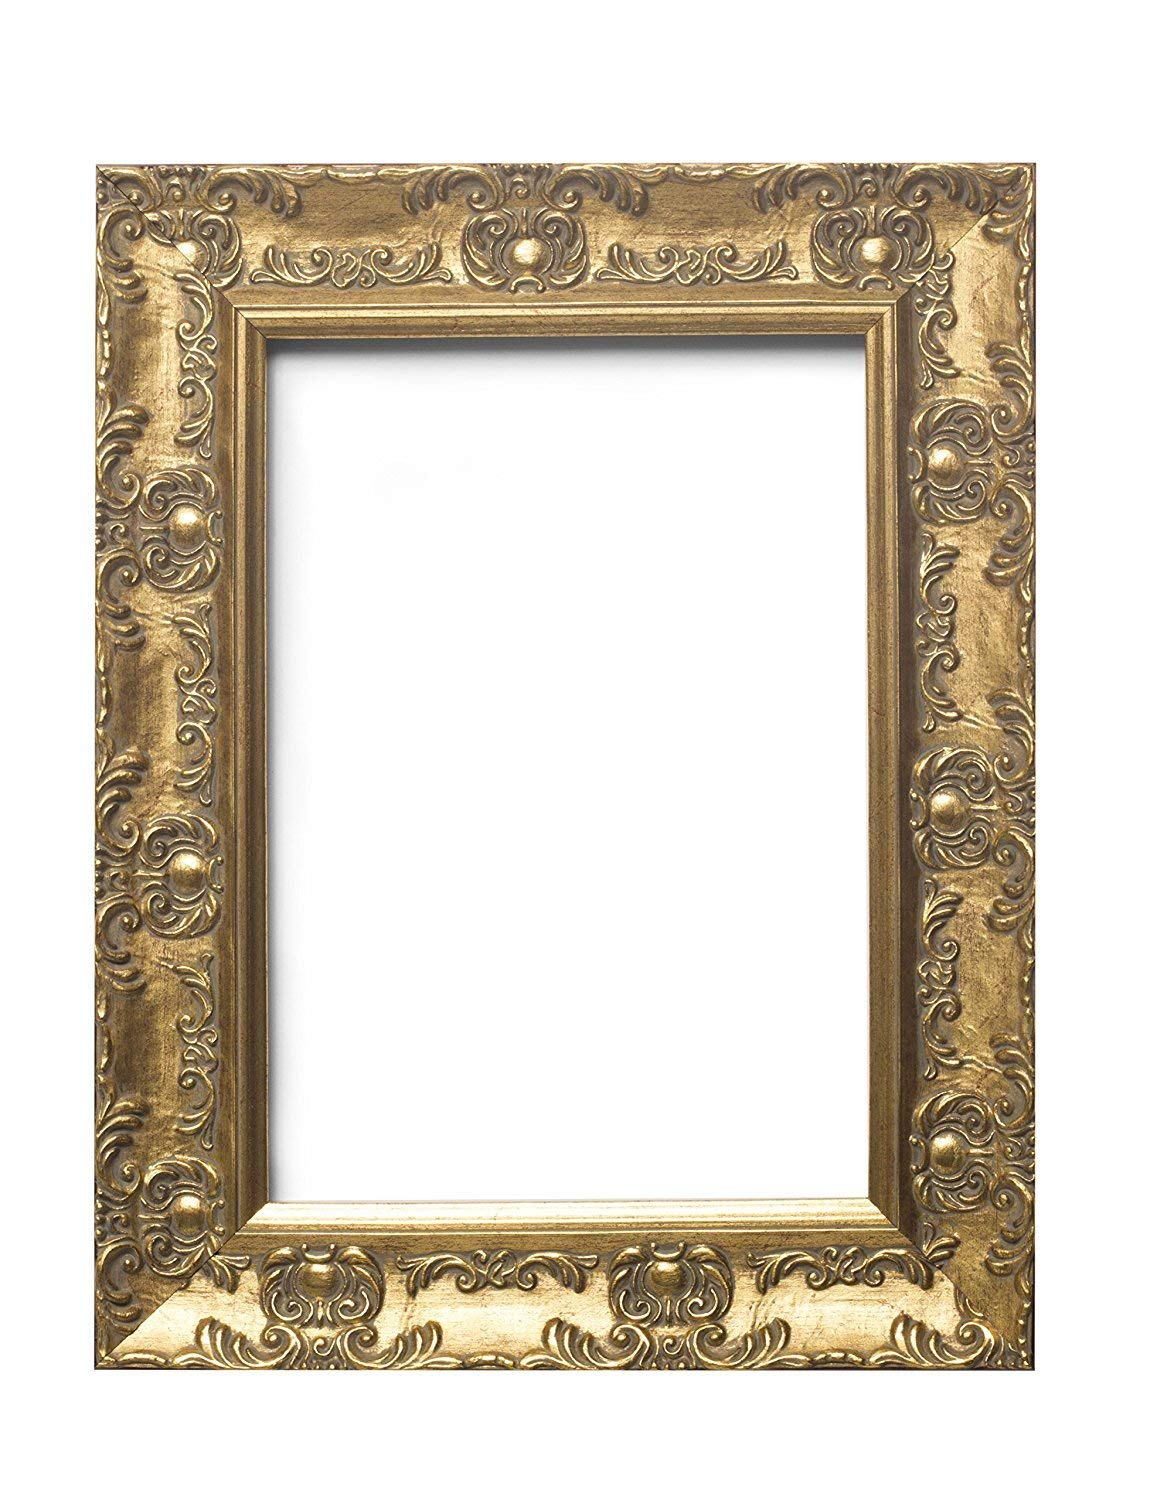 "Paintings Frames Wide Ornate Shabby Chic Antique Swept/Muse Picture/Photo/Poster Frame With An MDF Backing Board Ready To Hang-With Styrene Shatterproof Perspex Sheet Gold- 14""X11"" Gold"